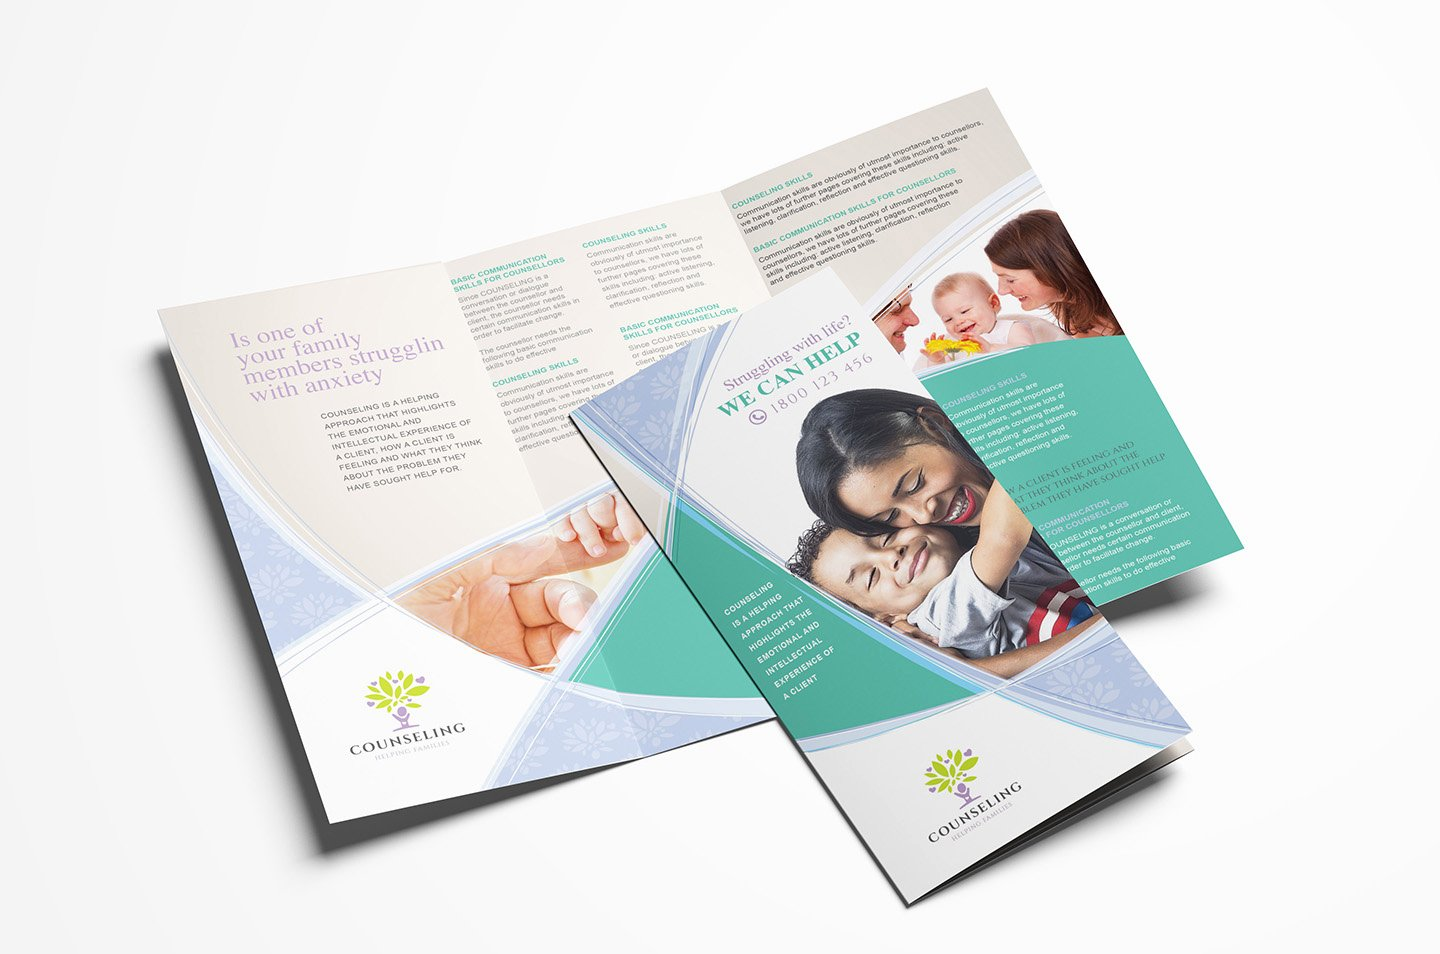 Counselling Service Tri Fold Brochure Template In Psd Ai